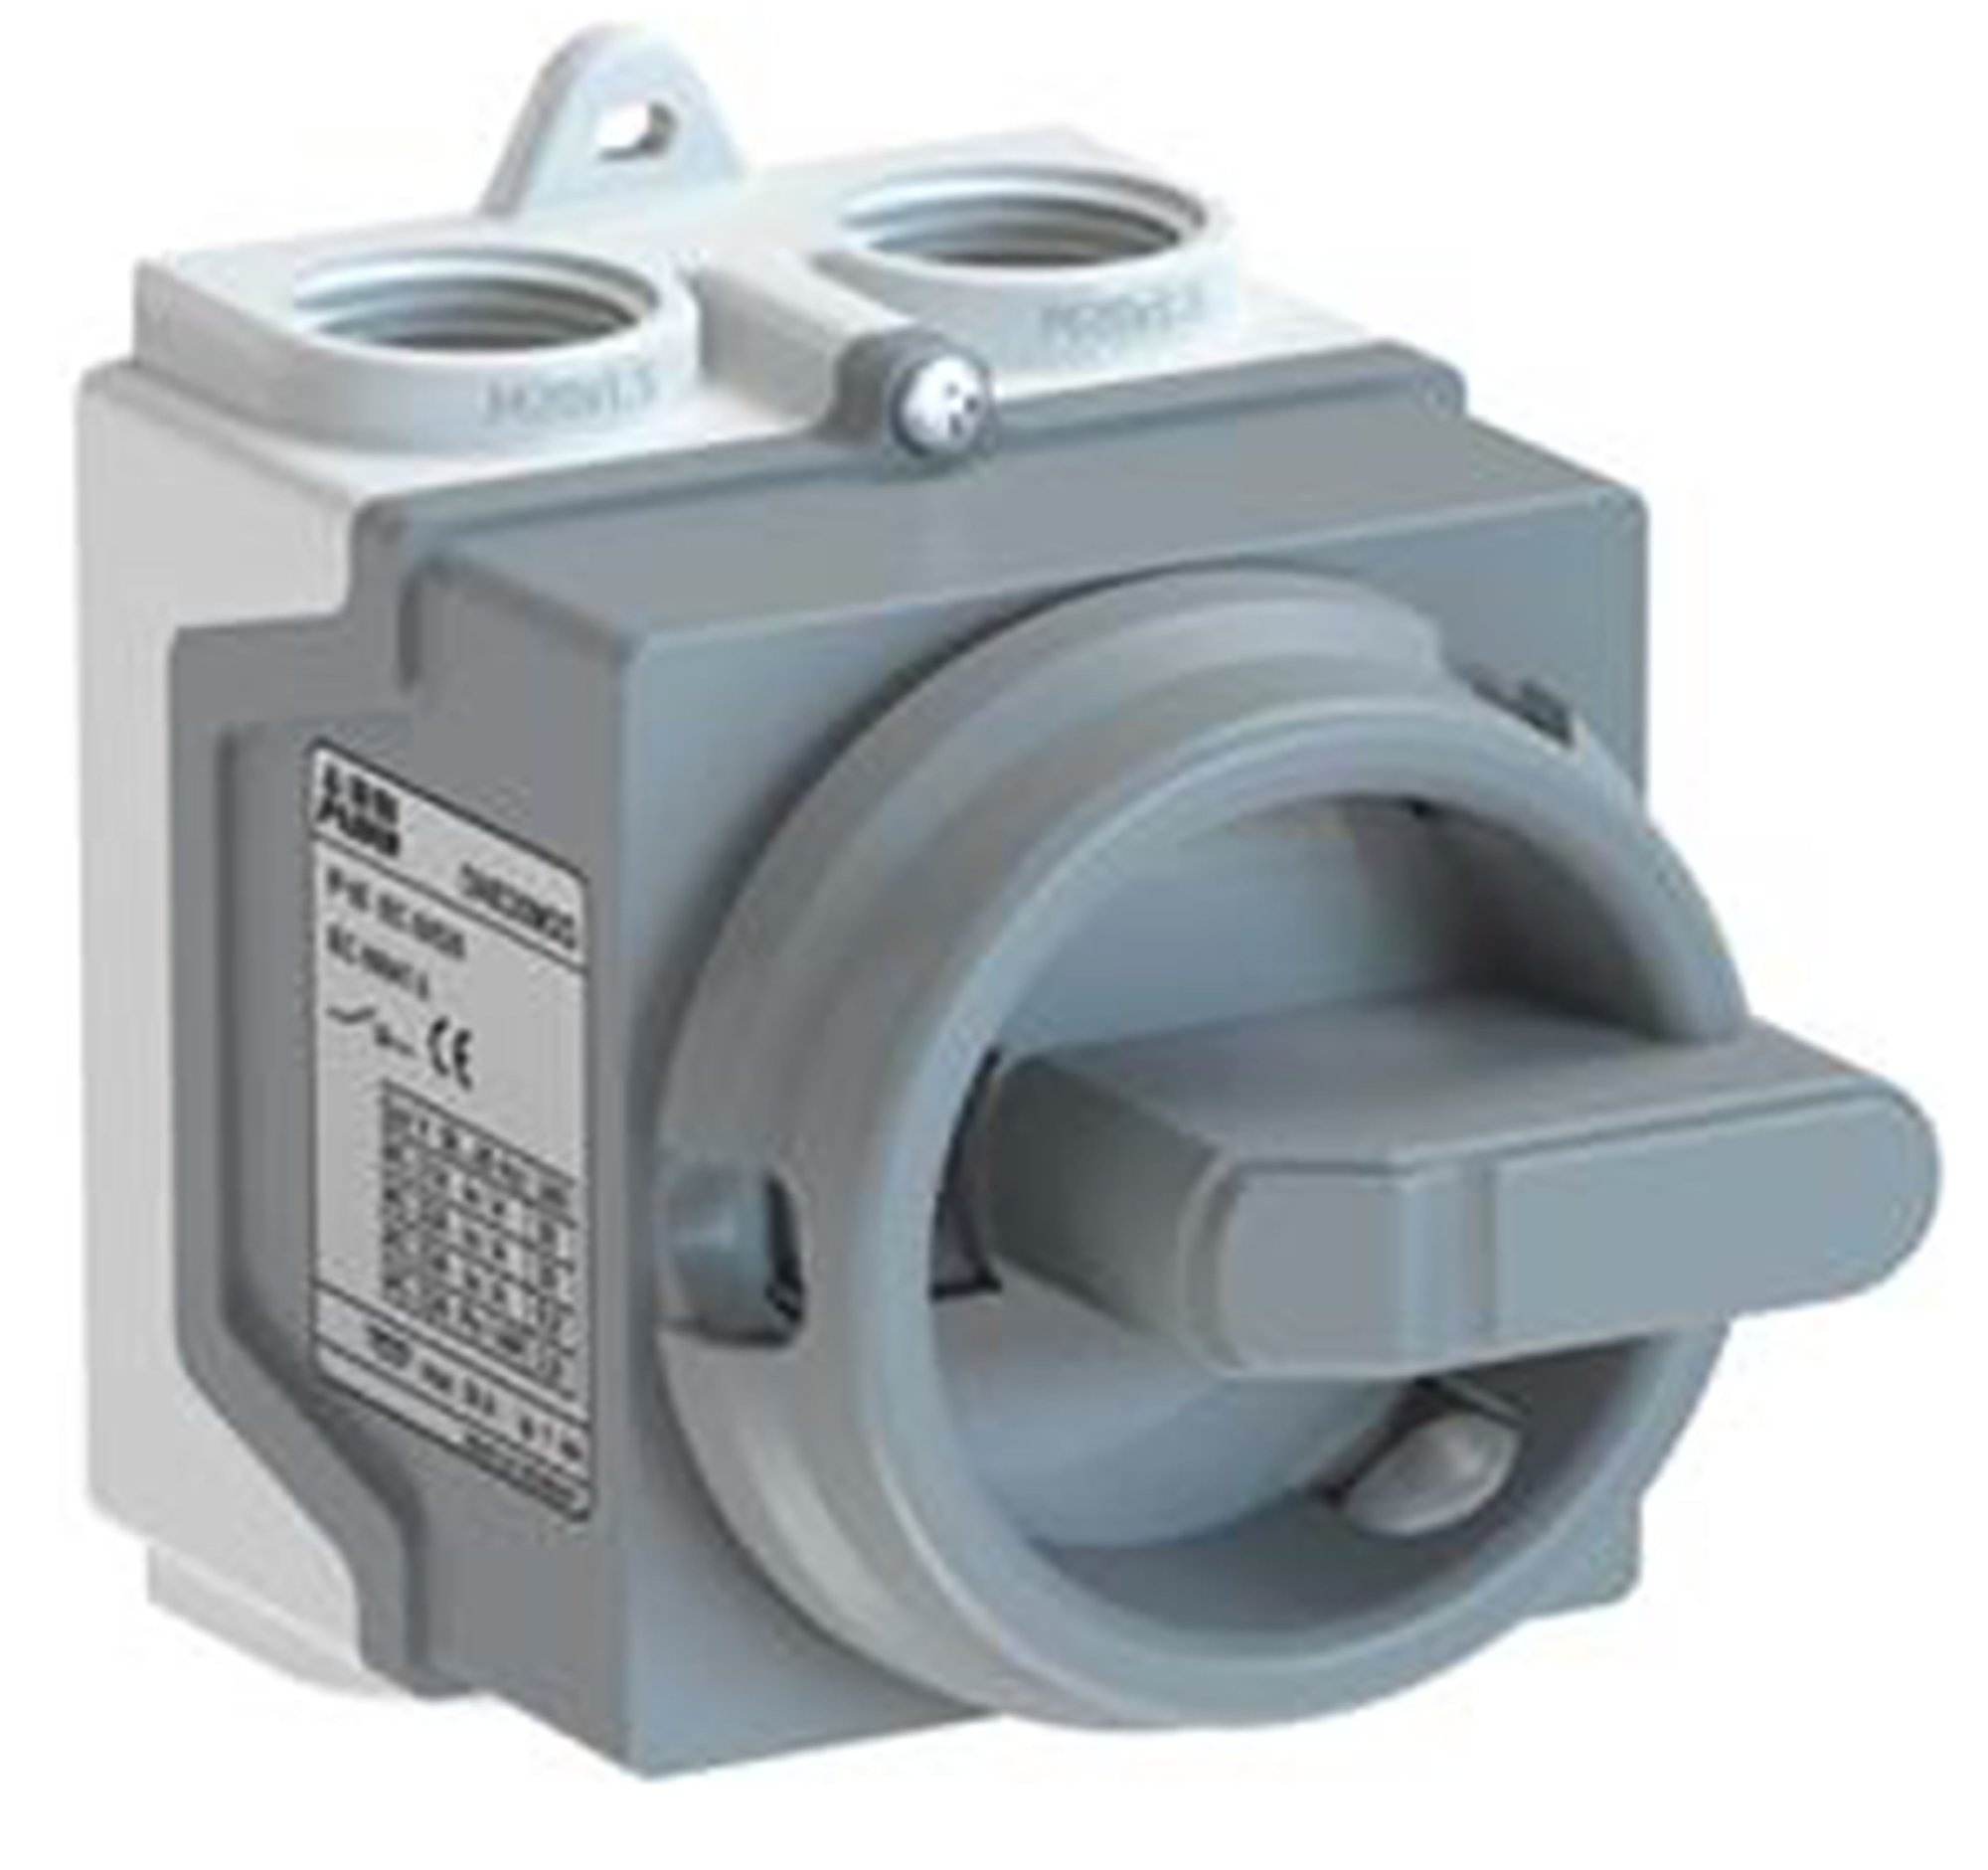 Safety switch 2-pole grey - Systemair